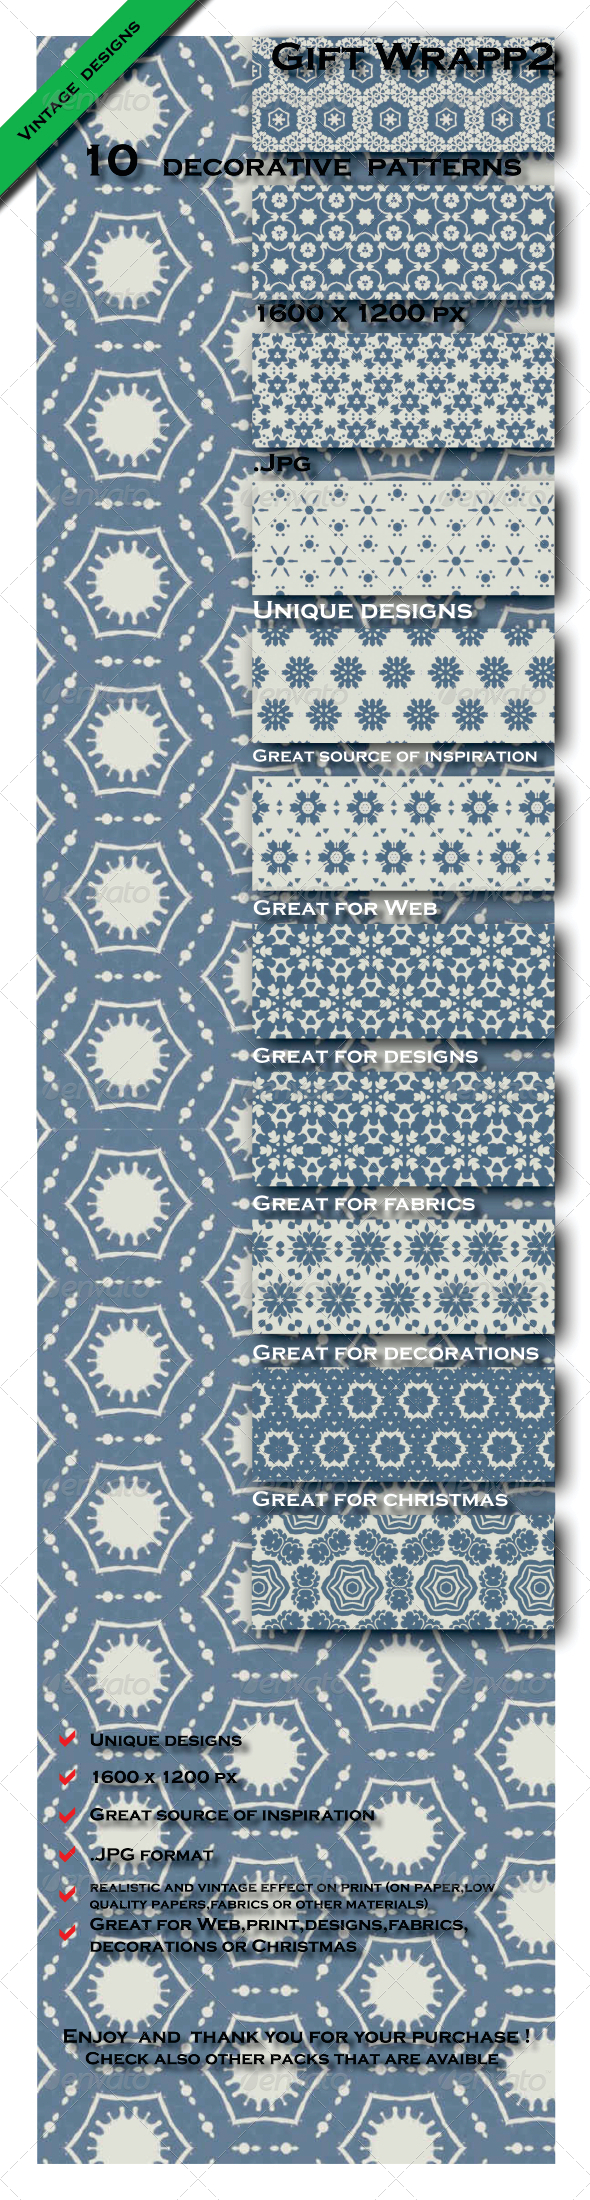 GraphicRiver 10 Gift Paper Models Patterns Pack 2 6603436